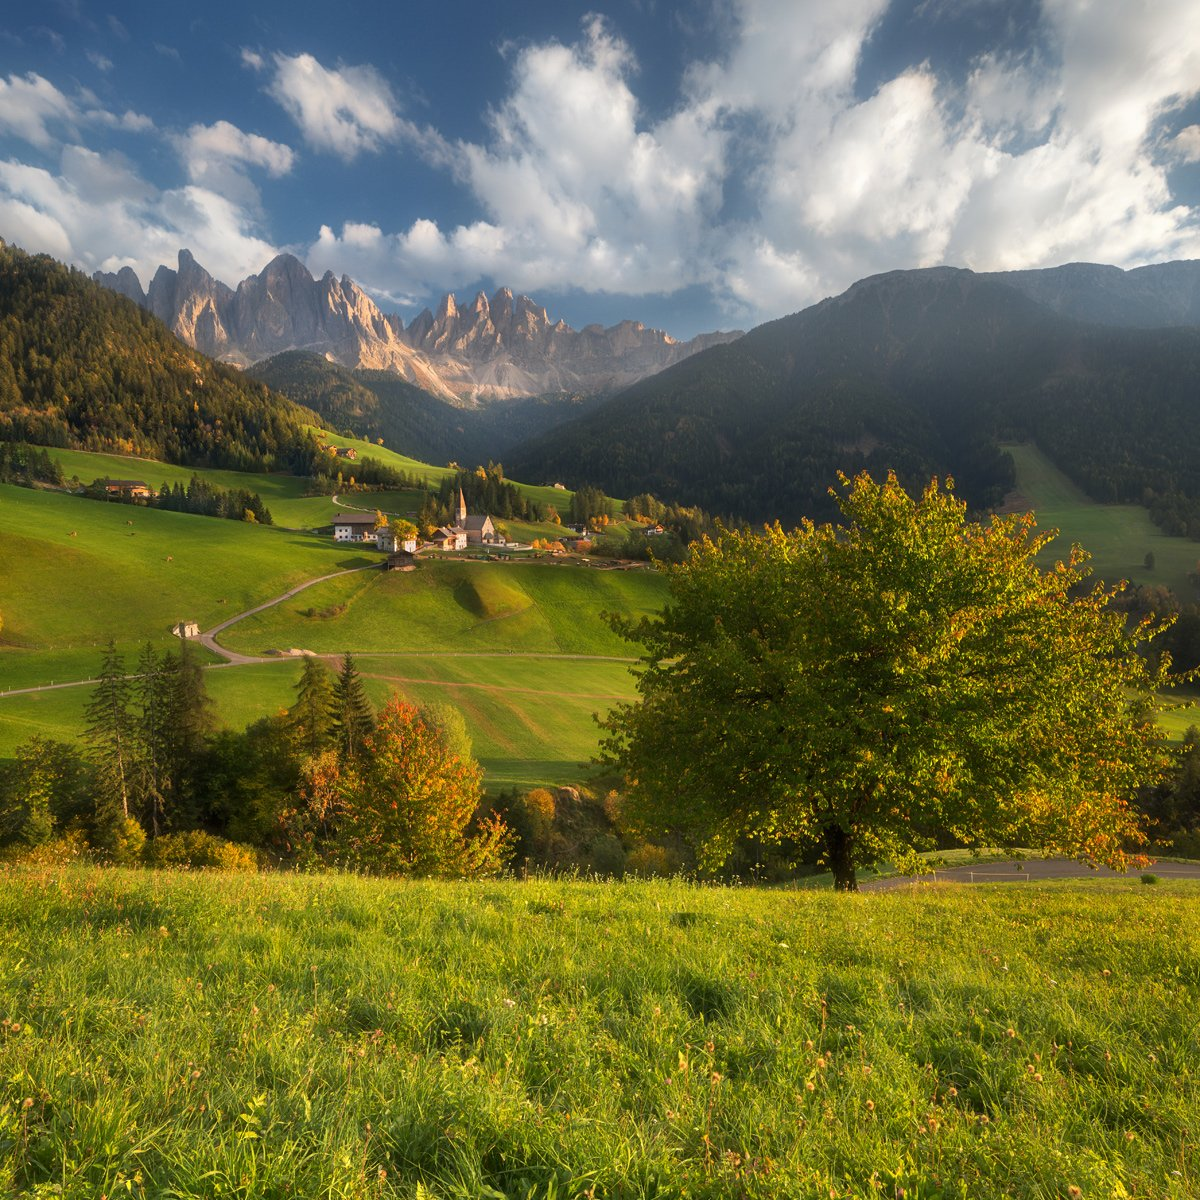 sv-phototravel.com, доломиты, santa maddalena, Валерий Щербина (sv-phototravel.com)